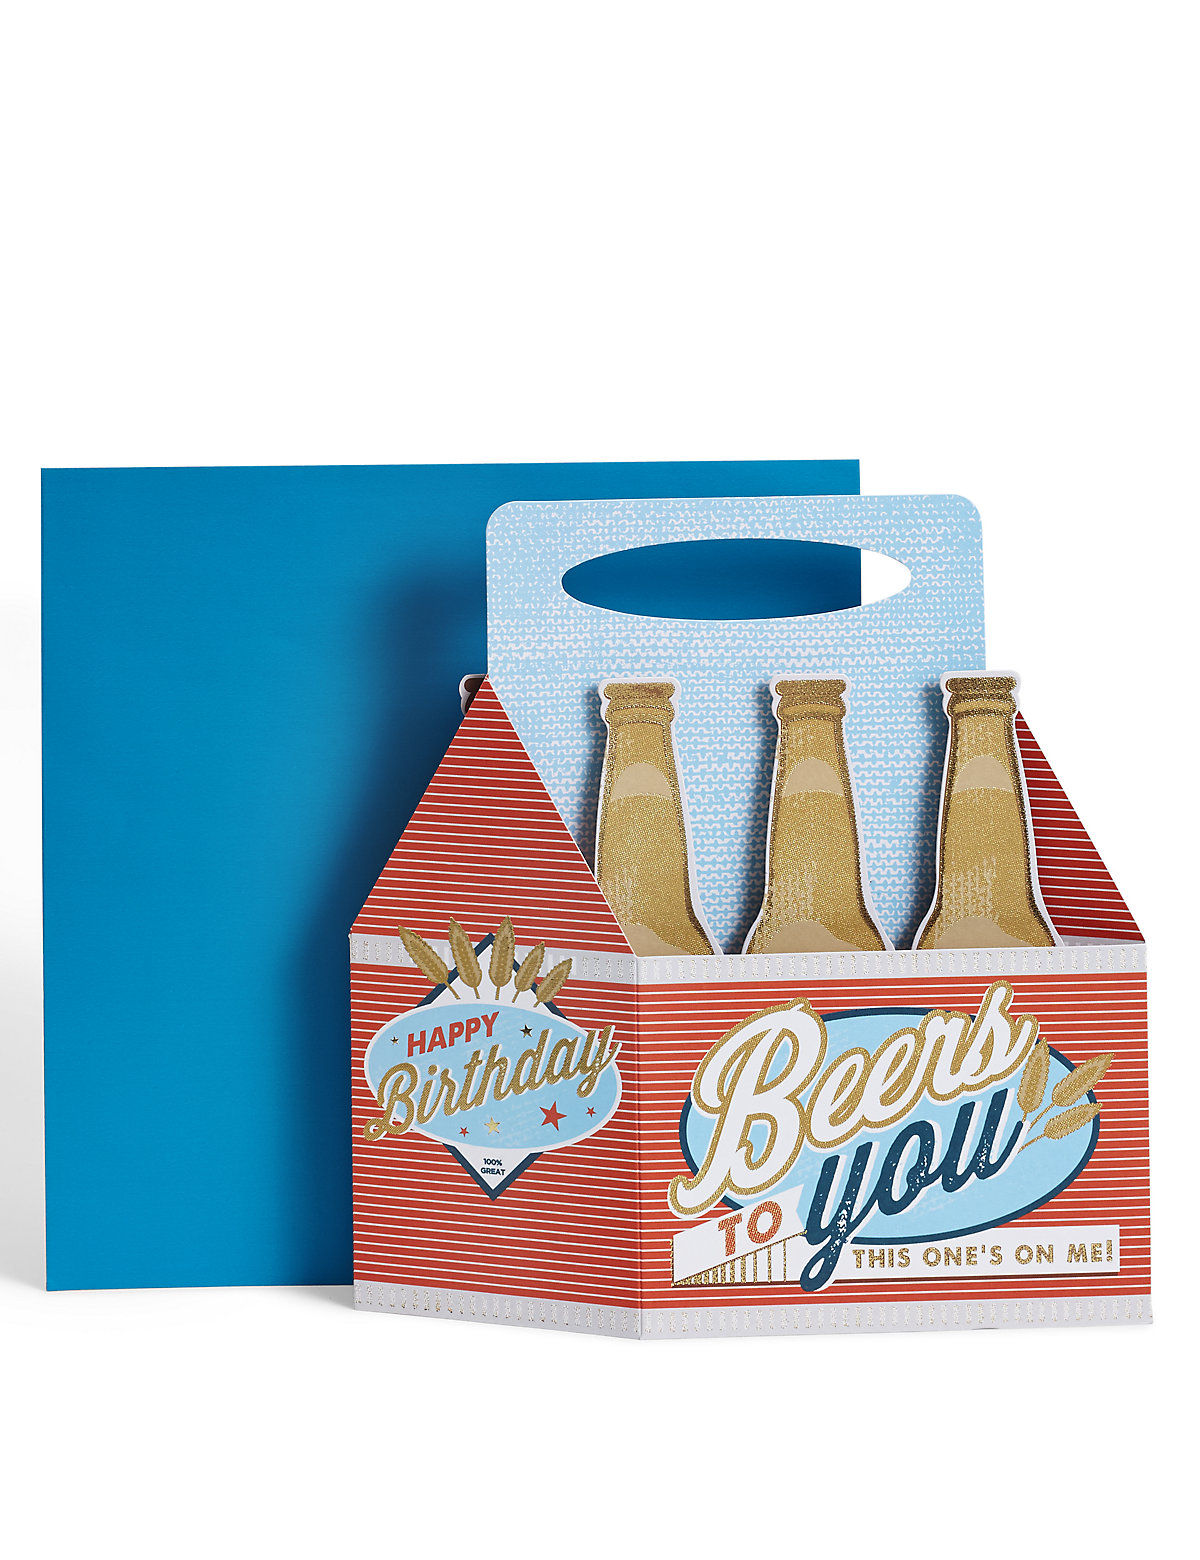 3-D Pop up Beer Crate Birthday Card